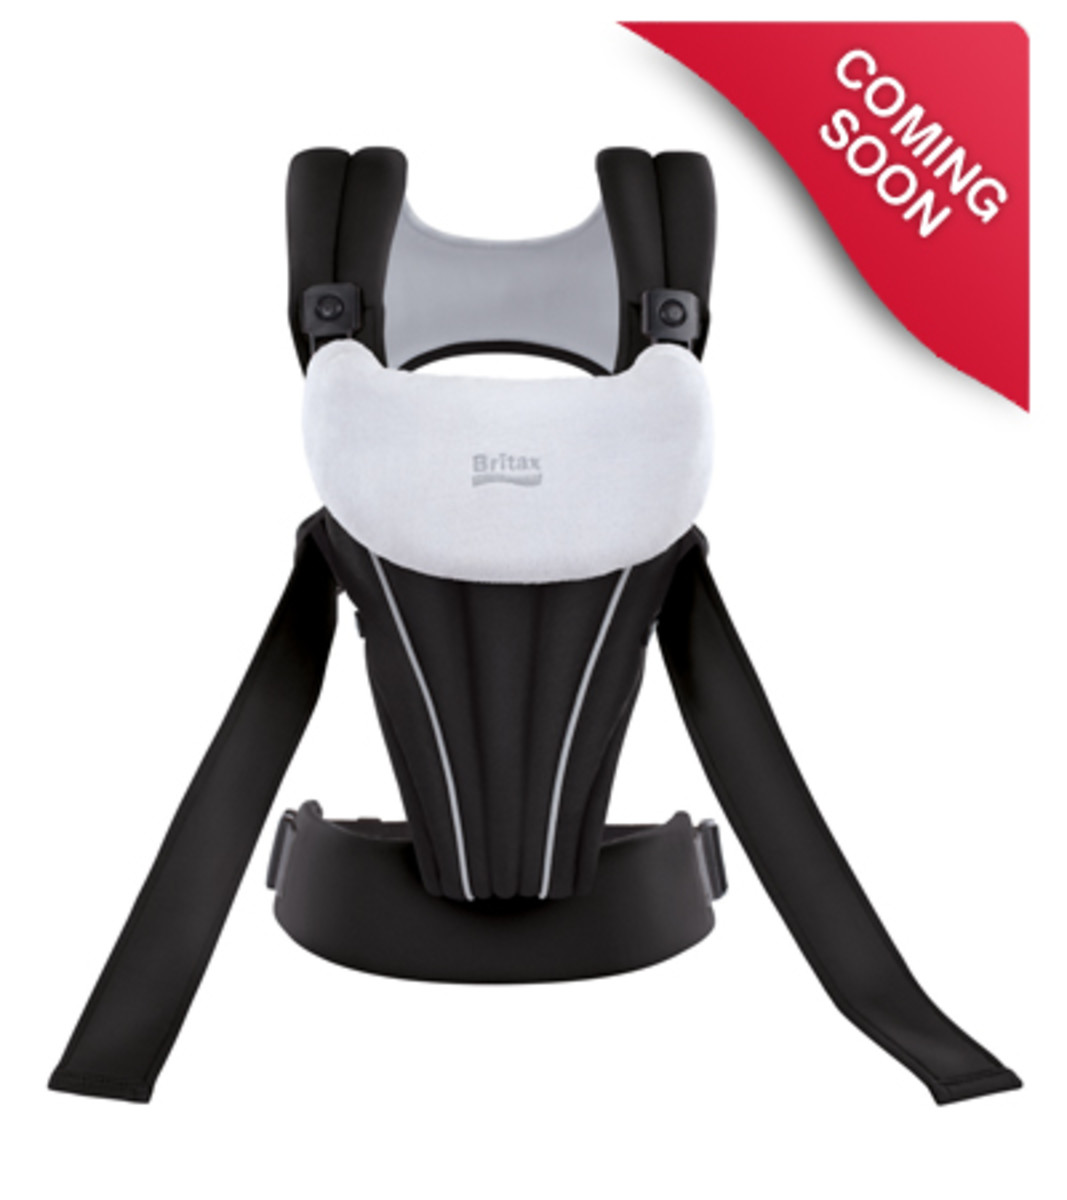 britax-baby-carrier-45-205-l